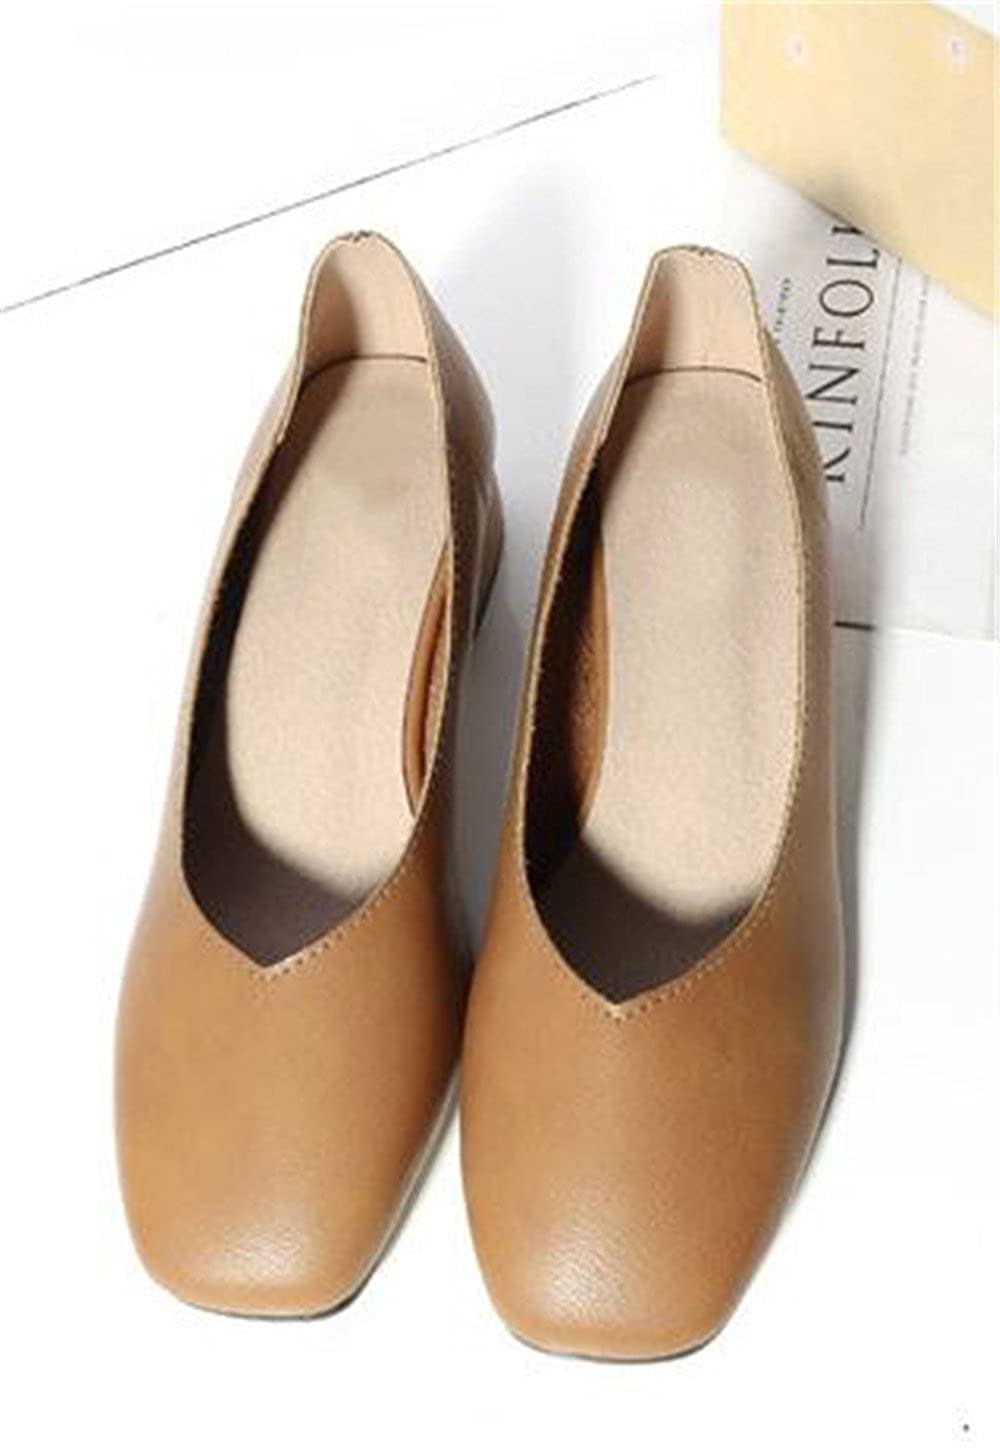 Womens Casual Loafers Squared Toe Flats Slip On Ballet Shoes